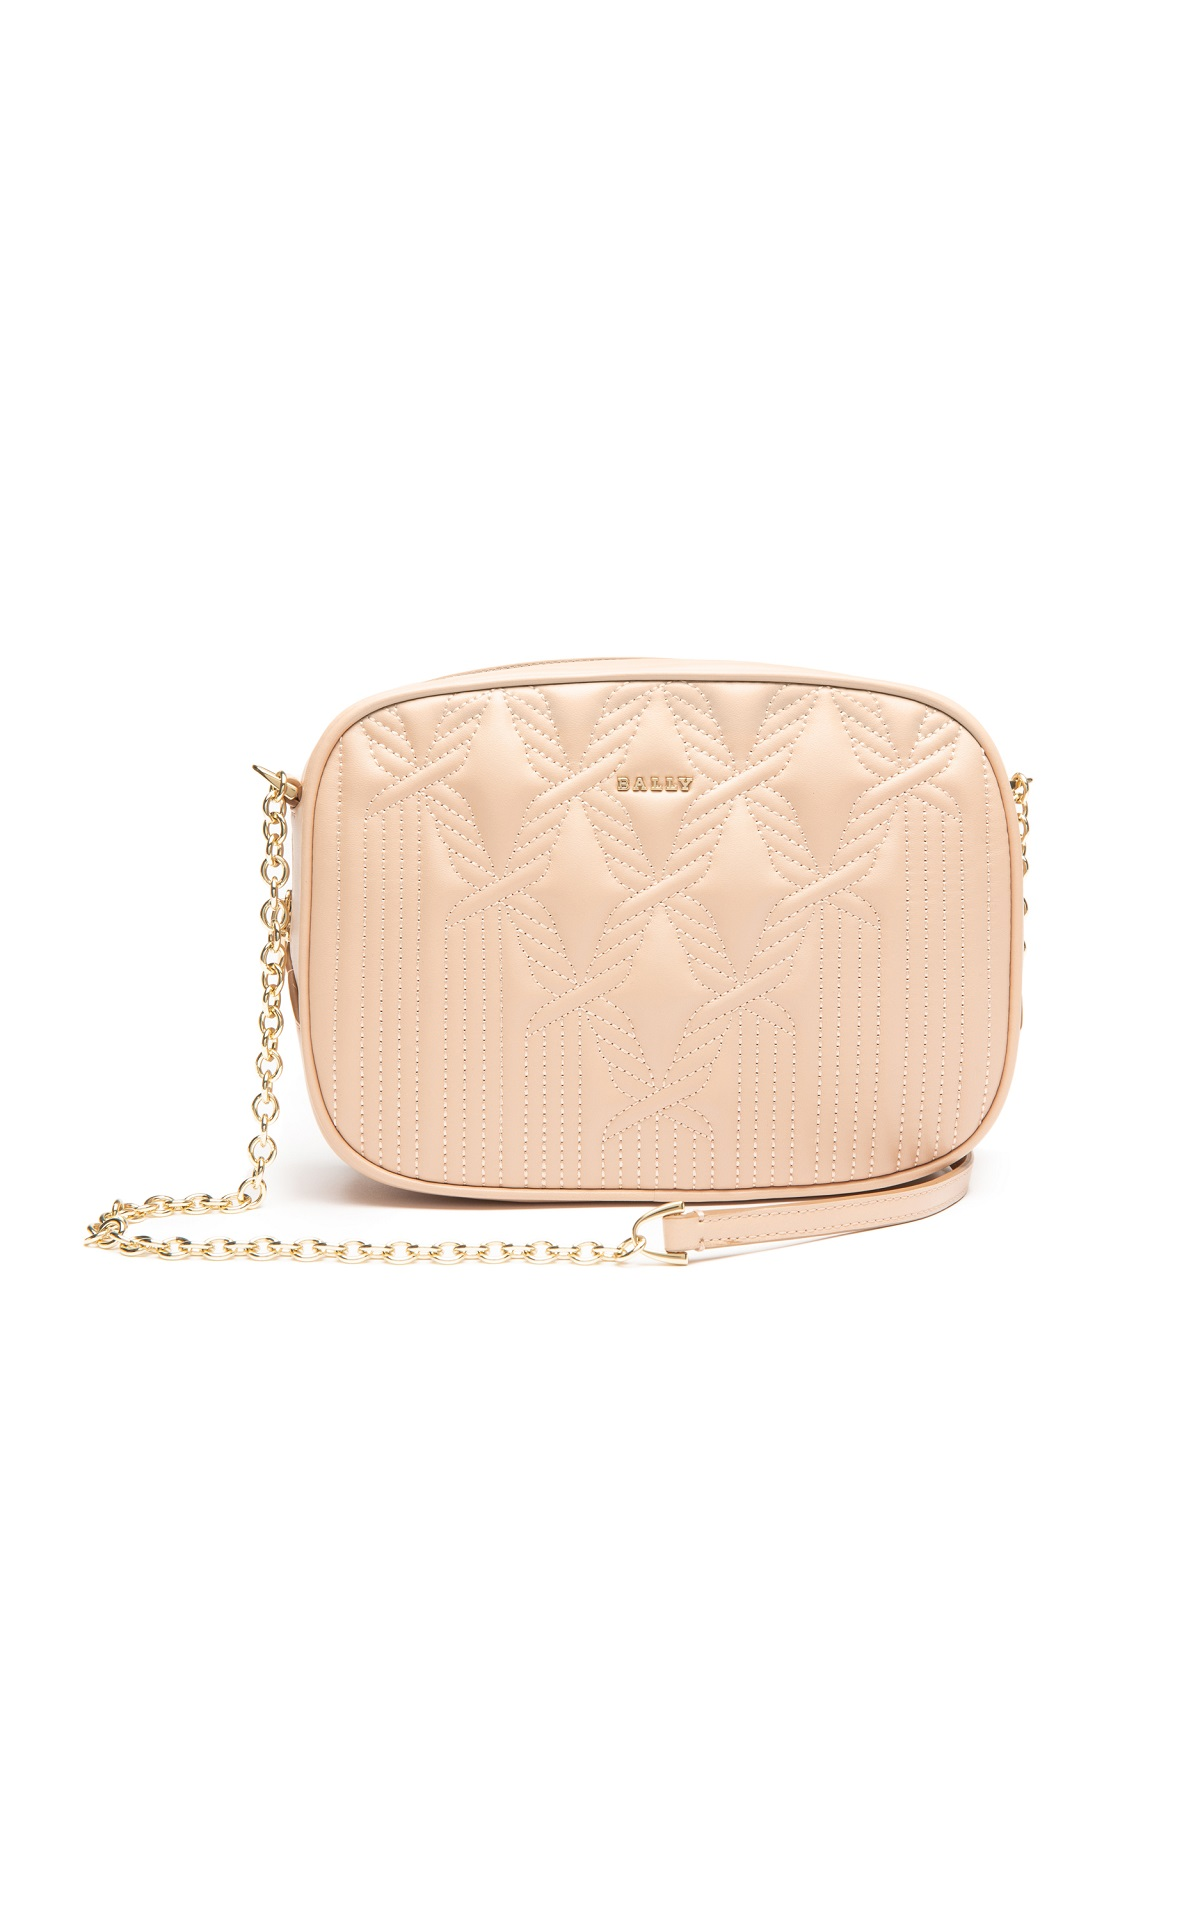 Small nude leather crossbody bag for woman Bally